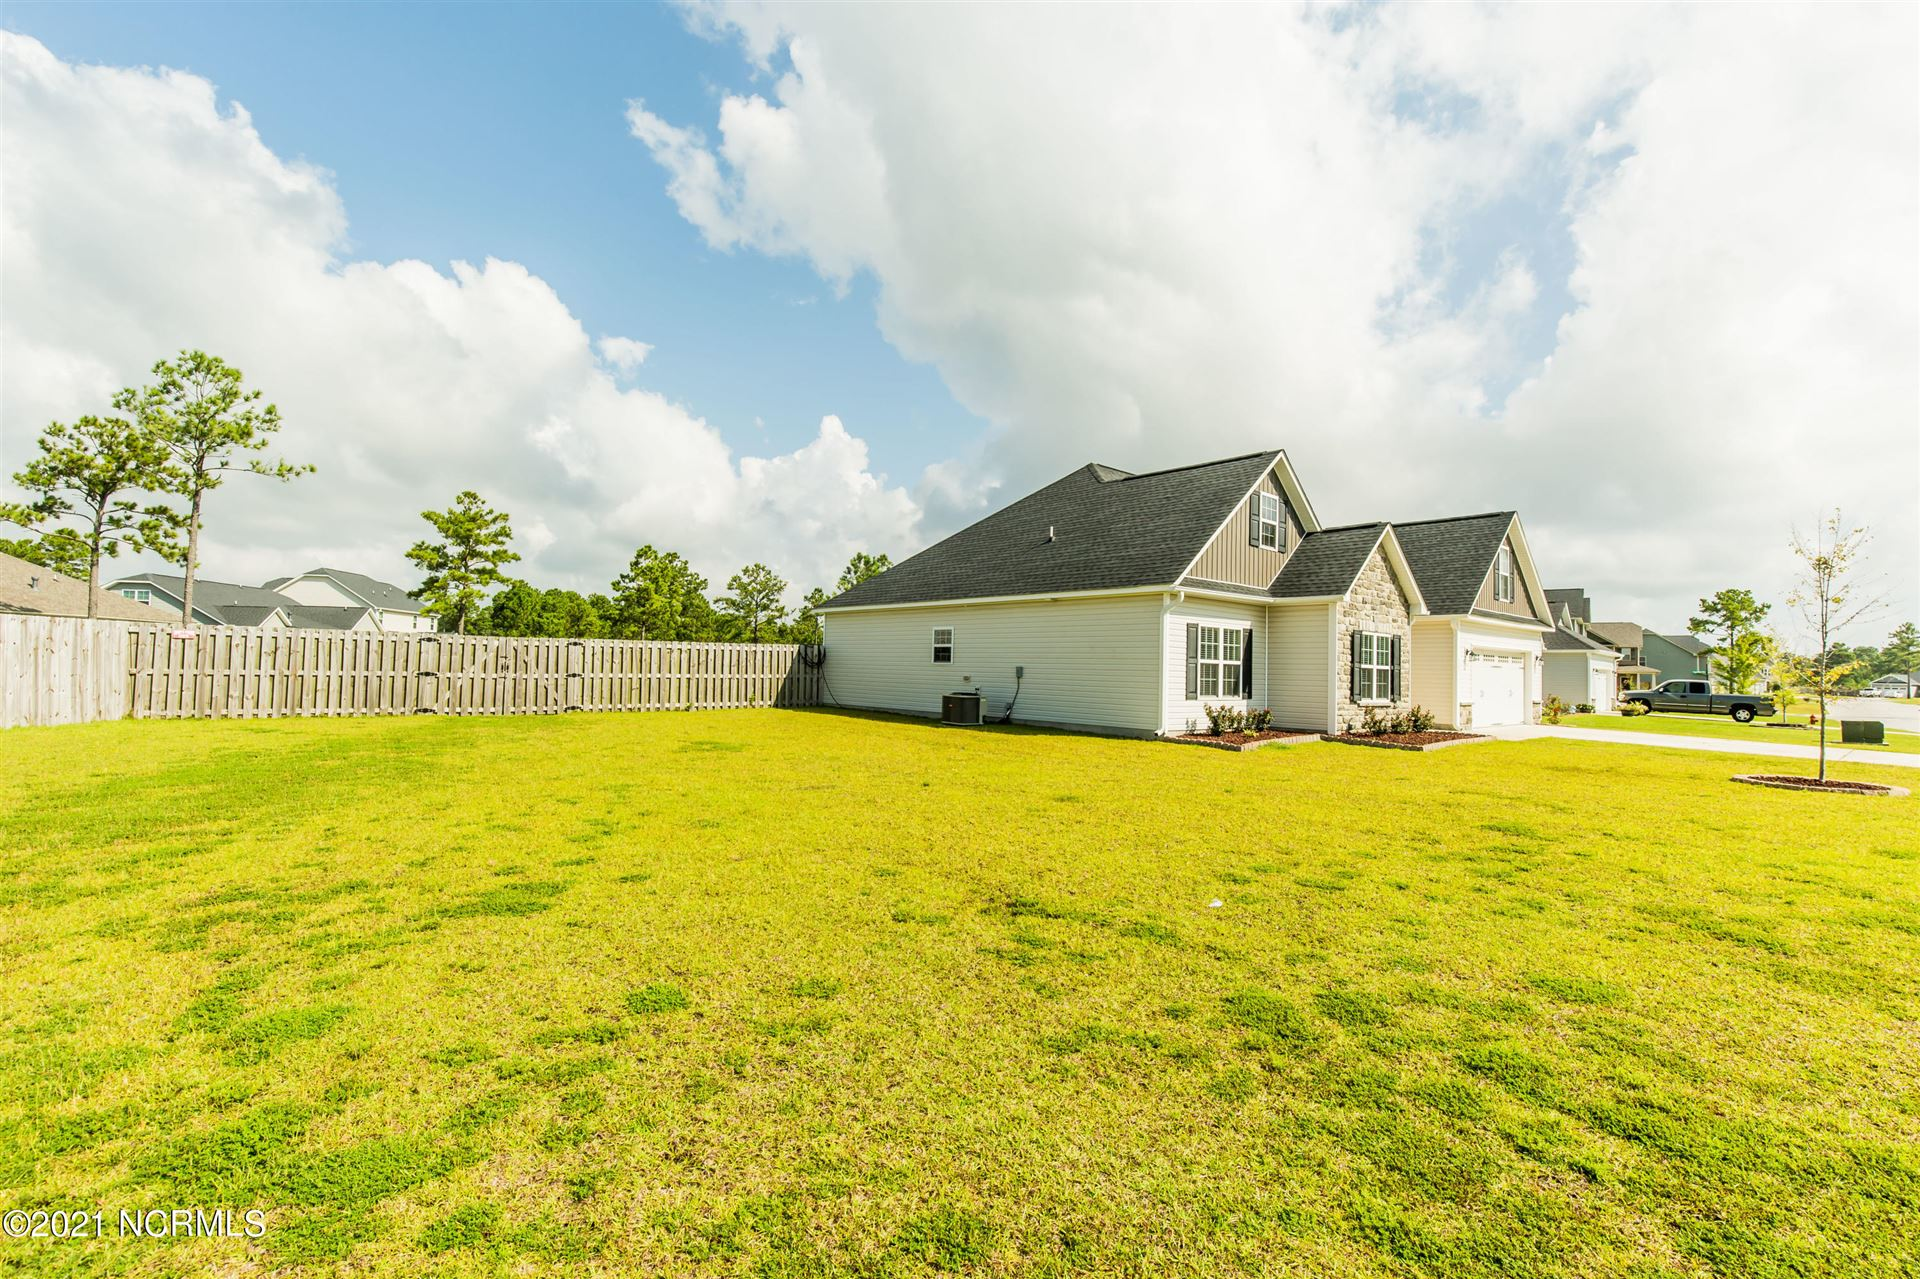 Photo of 203 Salty Dog Lane, Sneads Ferry, NC 28460 (MLS # 100288030)